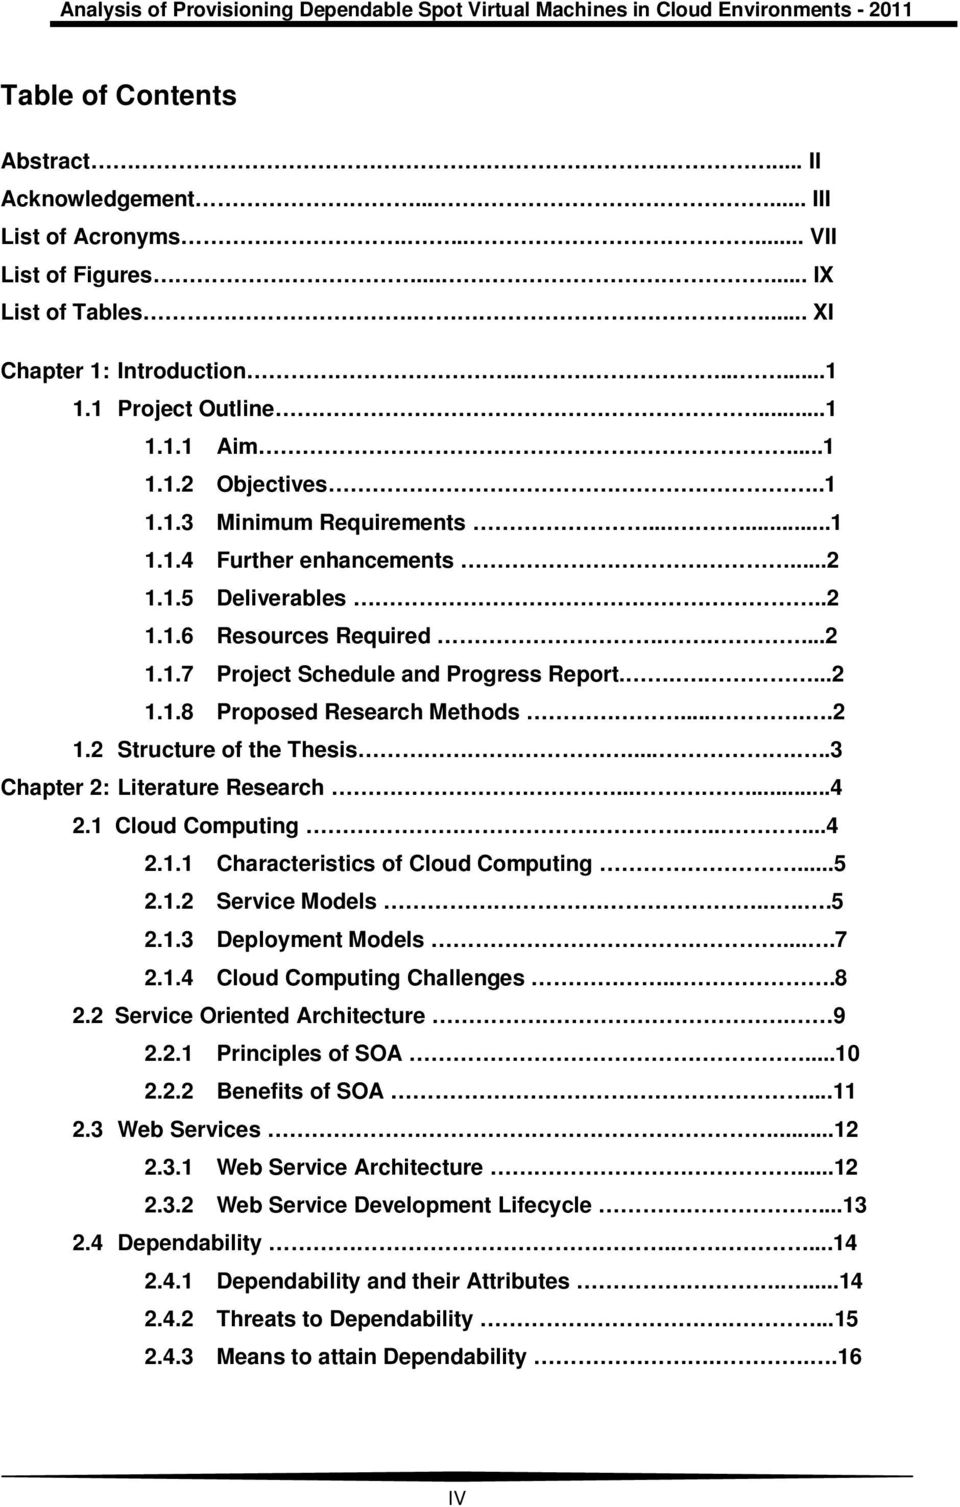 ....2 1.2 Structure of the Thesis.......3 Chapter 2: Literature Research......4 2.1 Cloud Computing......4 2.1.1 Characteristics of Cloud Computing...5 2.1.2 Service Models.....5 2.1.3 Deployment Models.